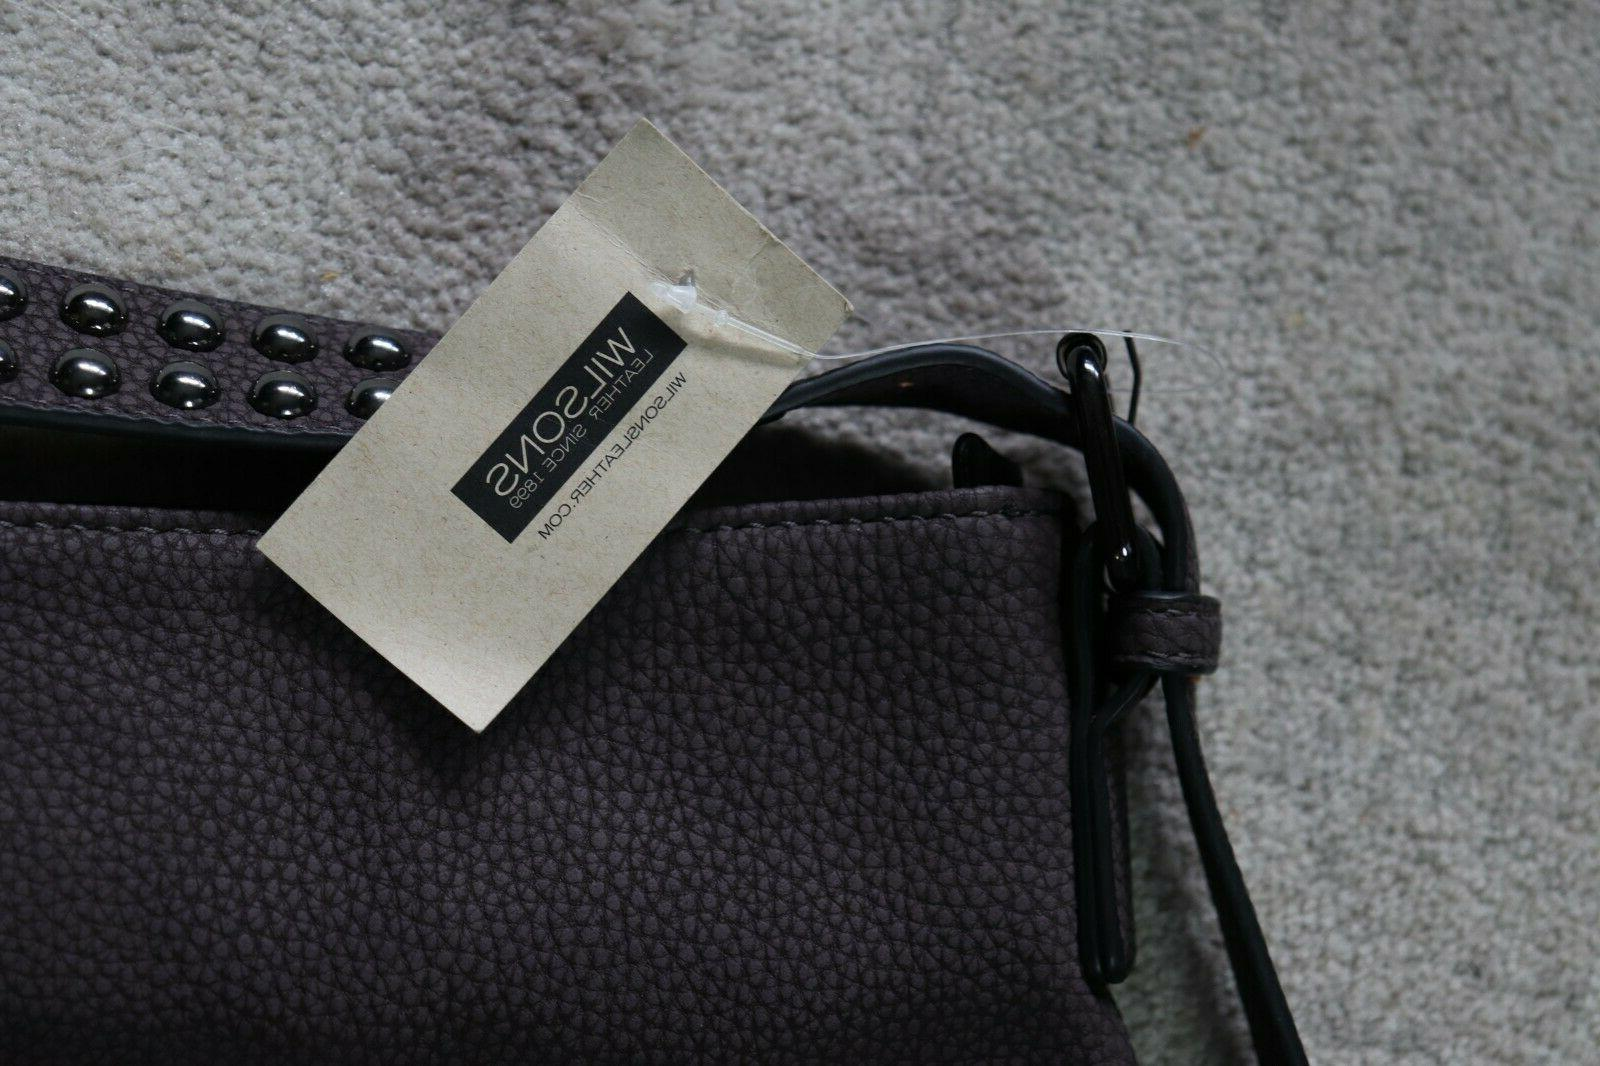 Wilsons Leather Bag size New with Retail